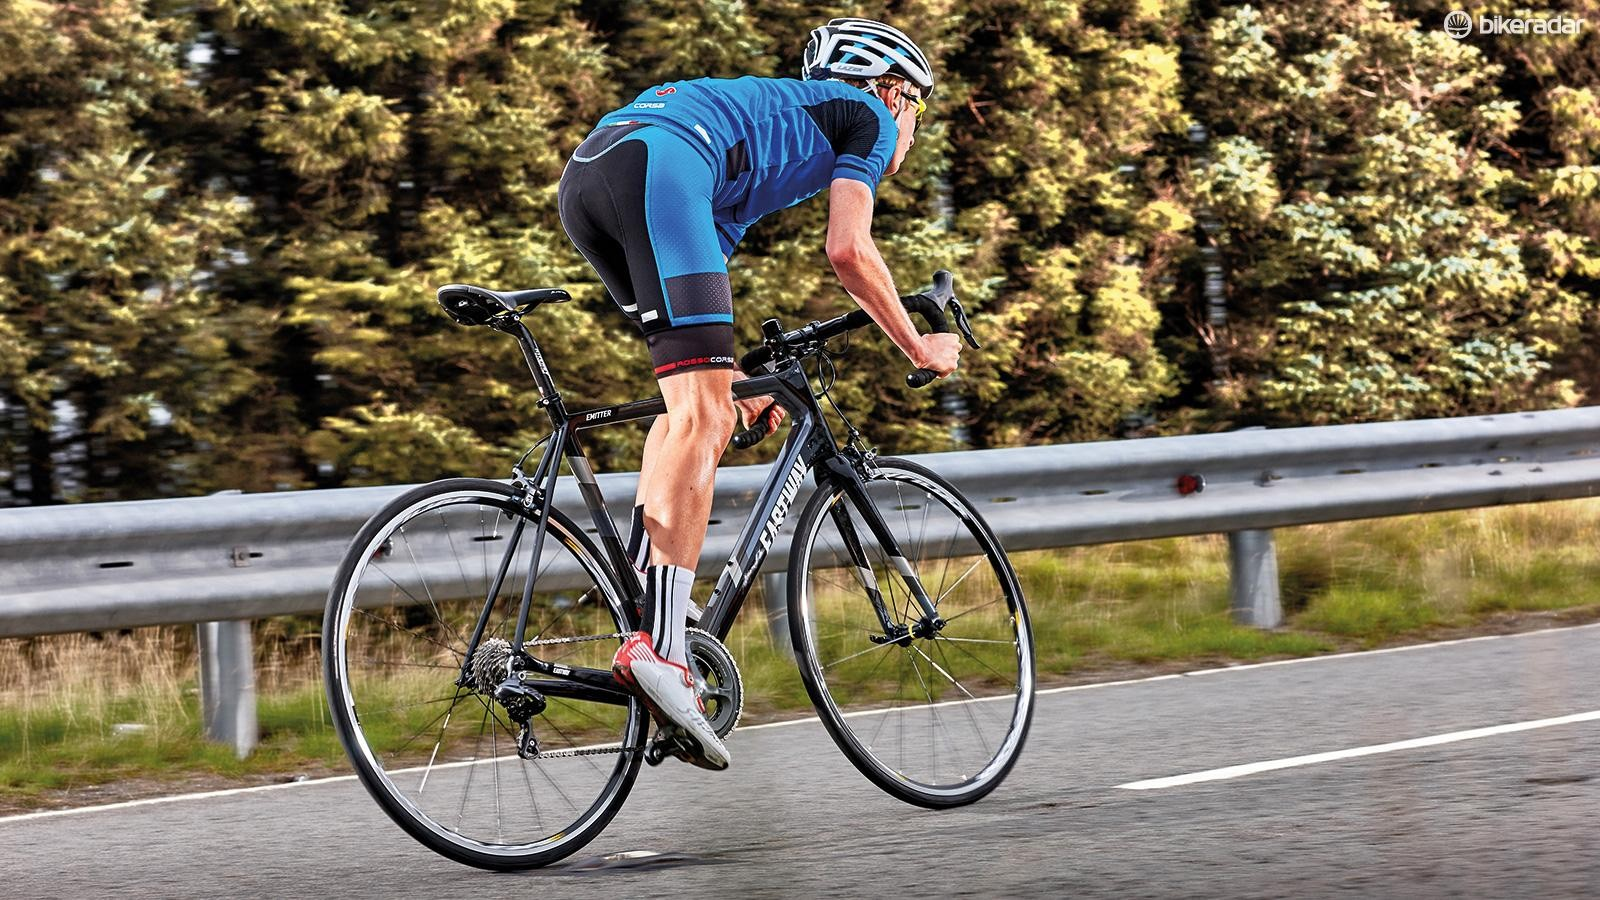 The R1 has to be one of this year's best value carbon road bikes with electronic shifting